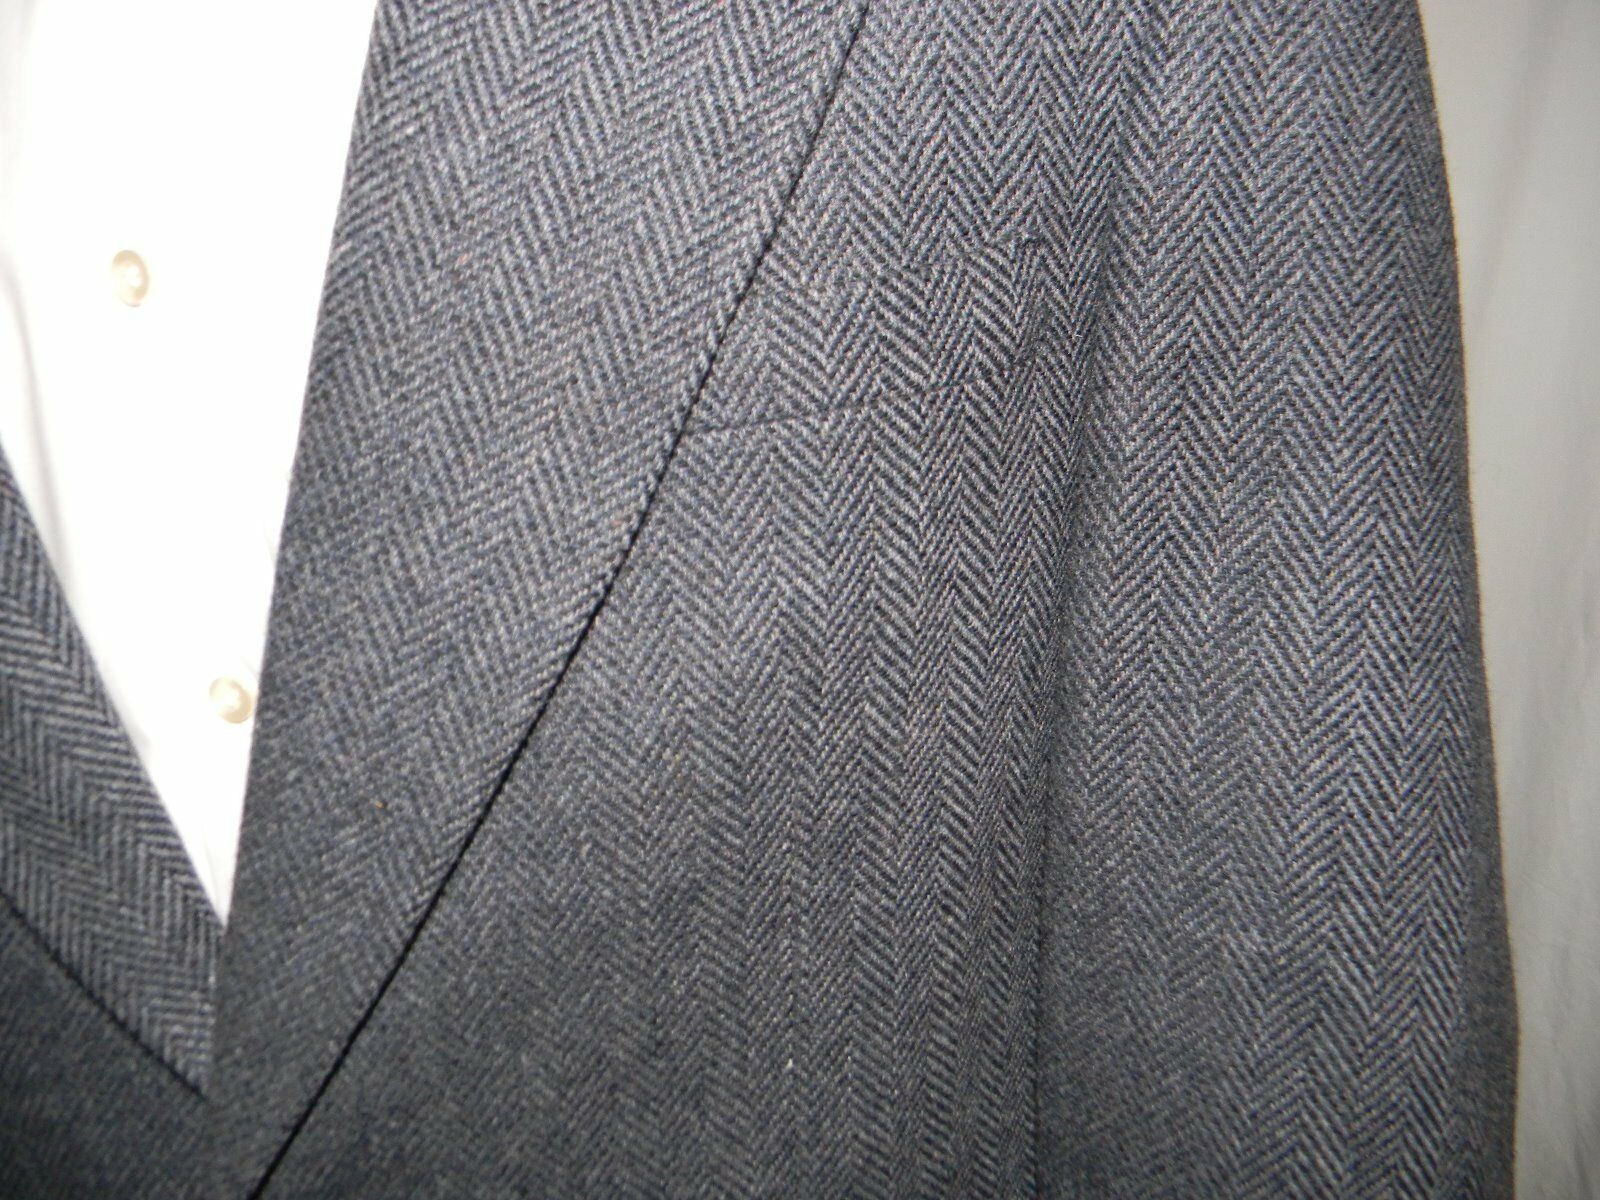 Towncraft Blazer 2 Button Blau Herringbone 100% Wool Center Vent 42